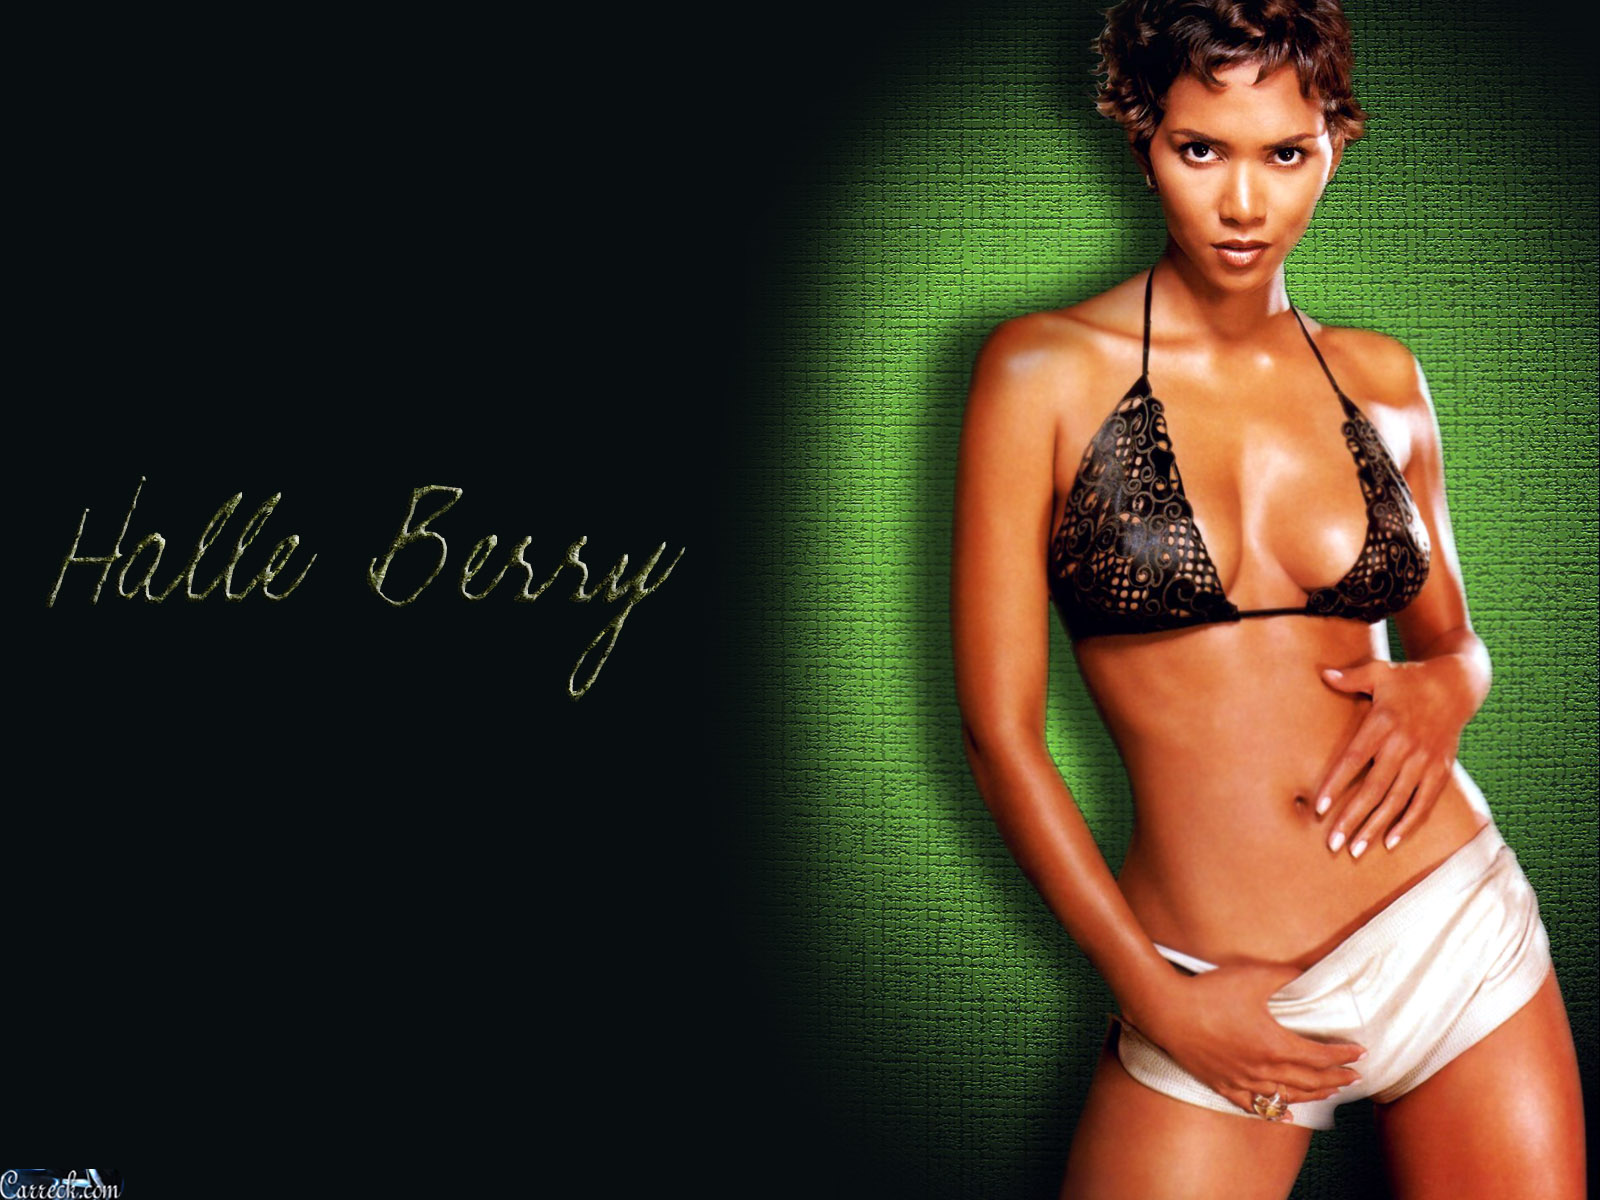 1600x1200 - Halle Berry Wallpapers 35